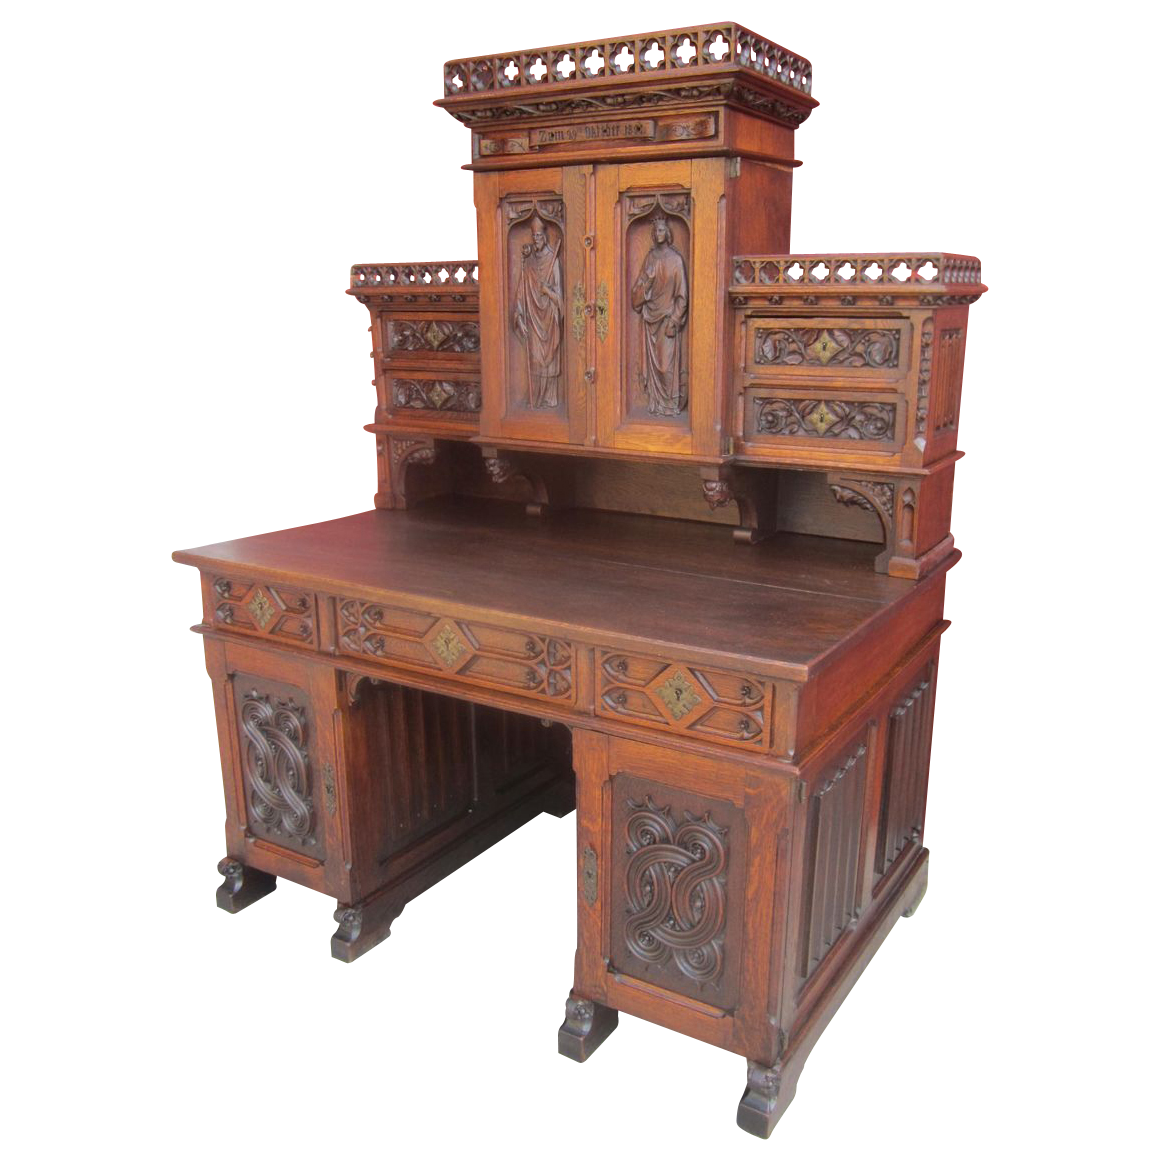 French Antique Gothic Desk Antique Furniture - French Antique Gothic Desk Antique Furniture SOLD On Ruby Lane